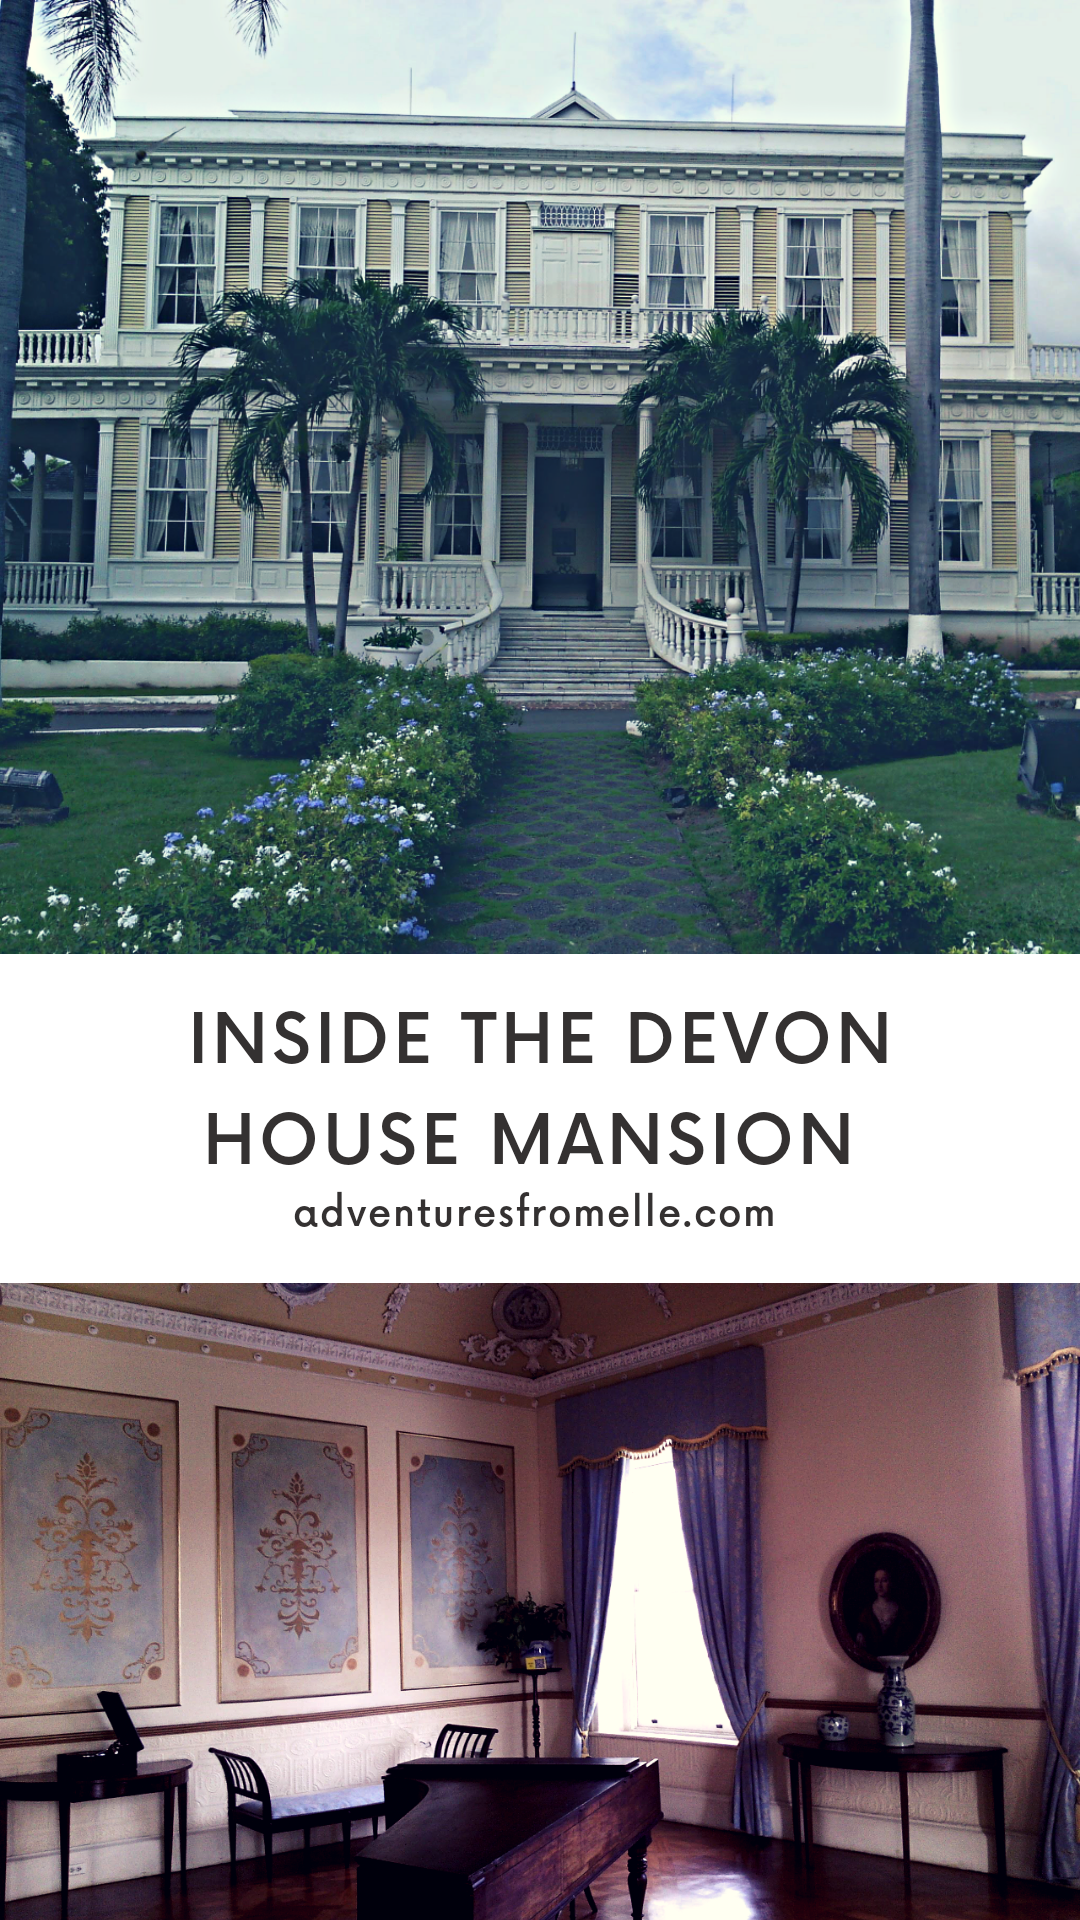 Inside the devon house mansion